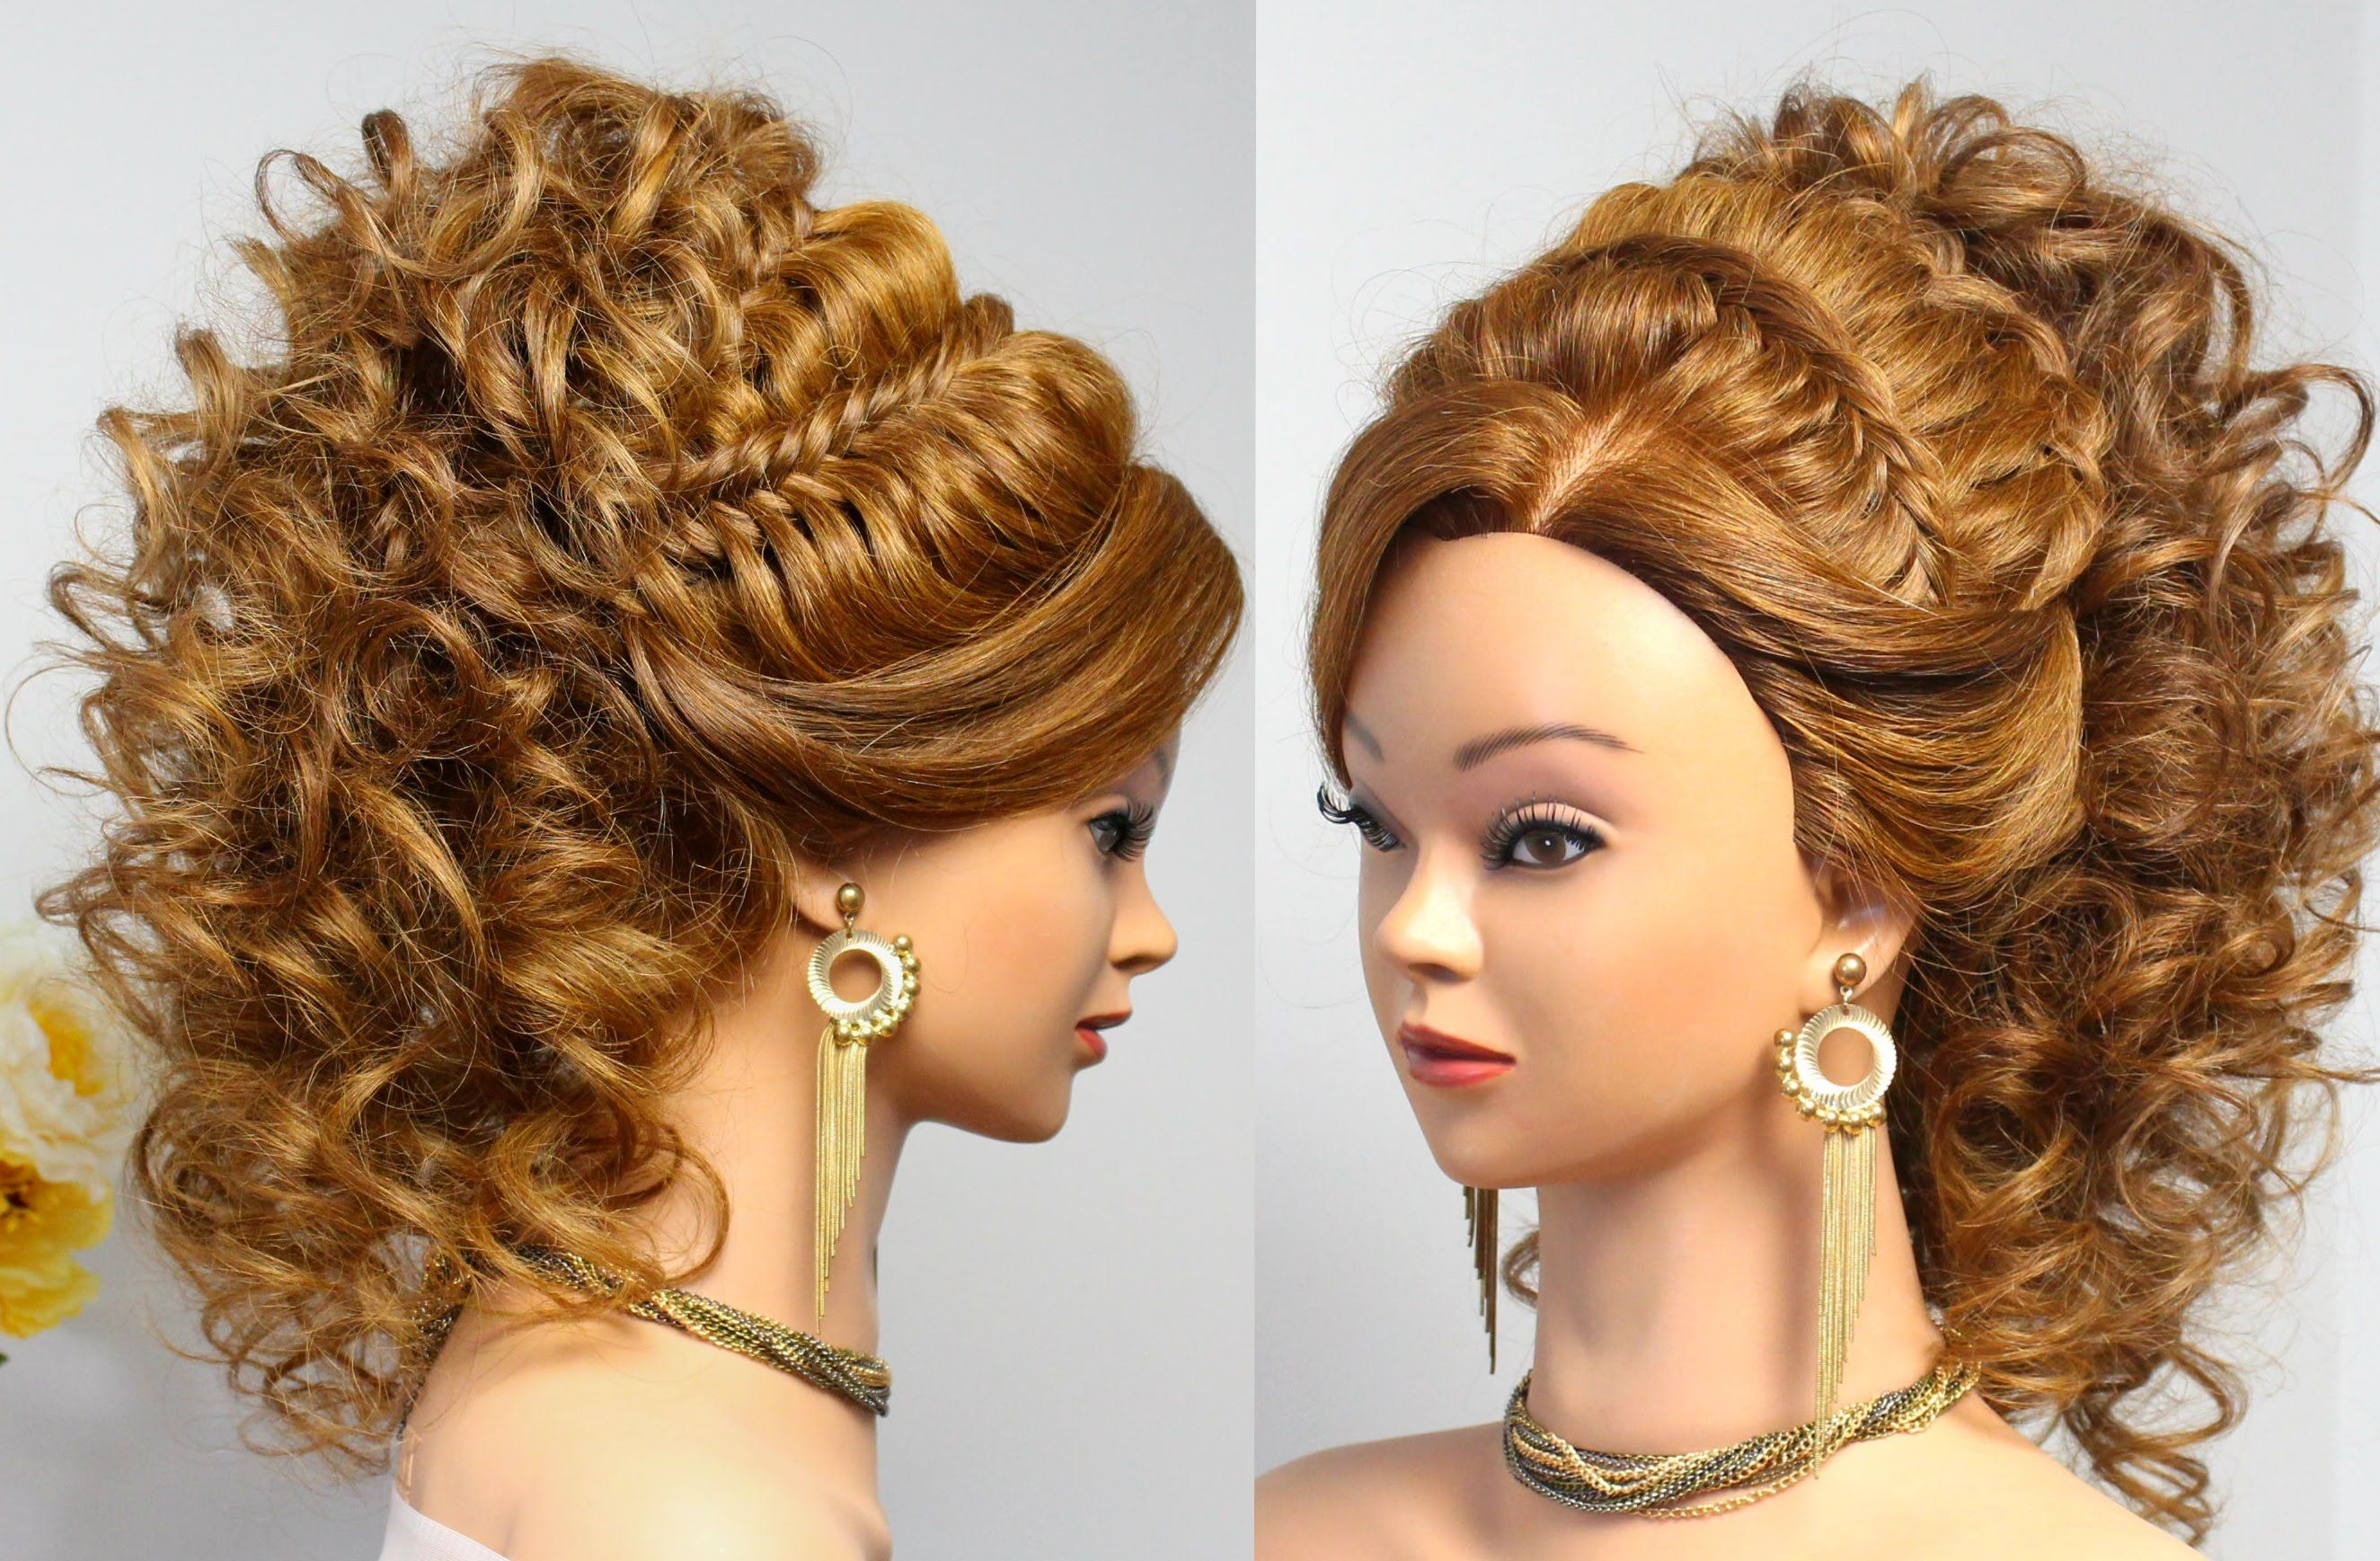 Curly prom wedding hairstyle for long hair tutorial